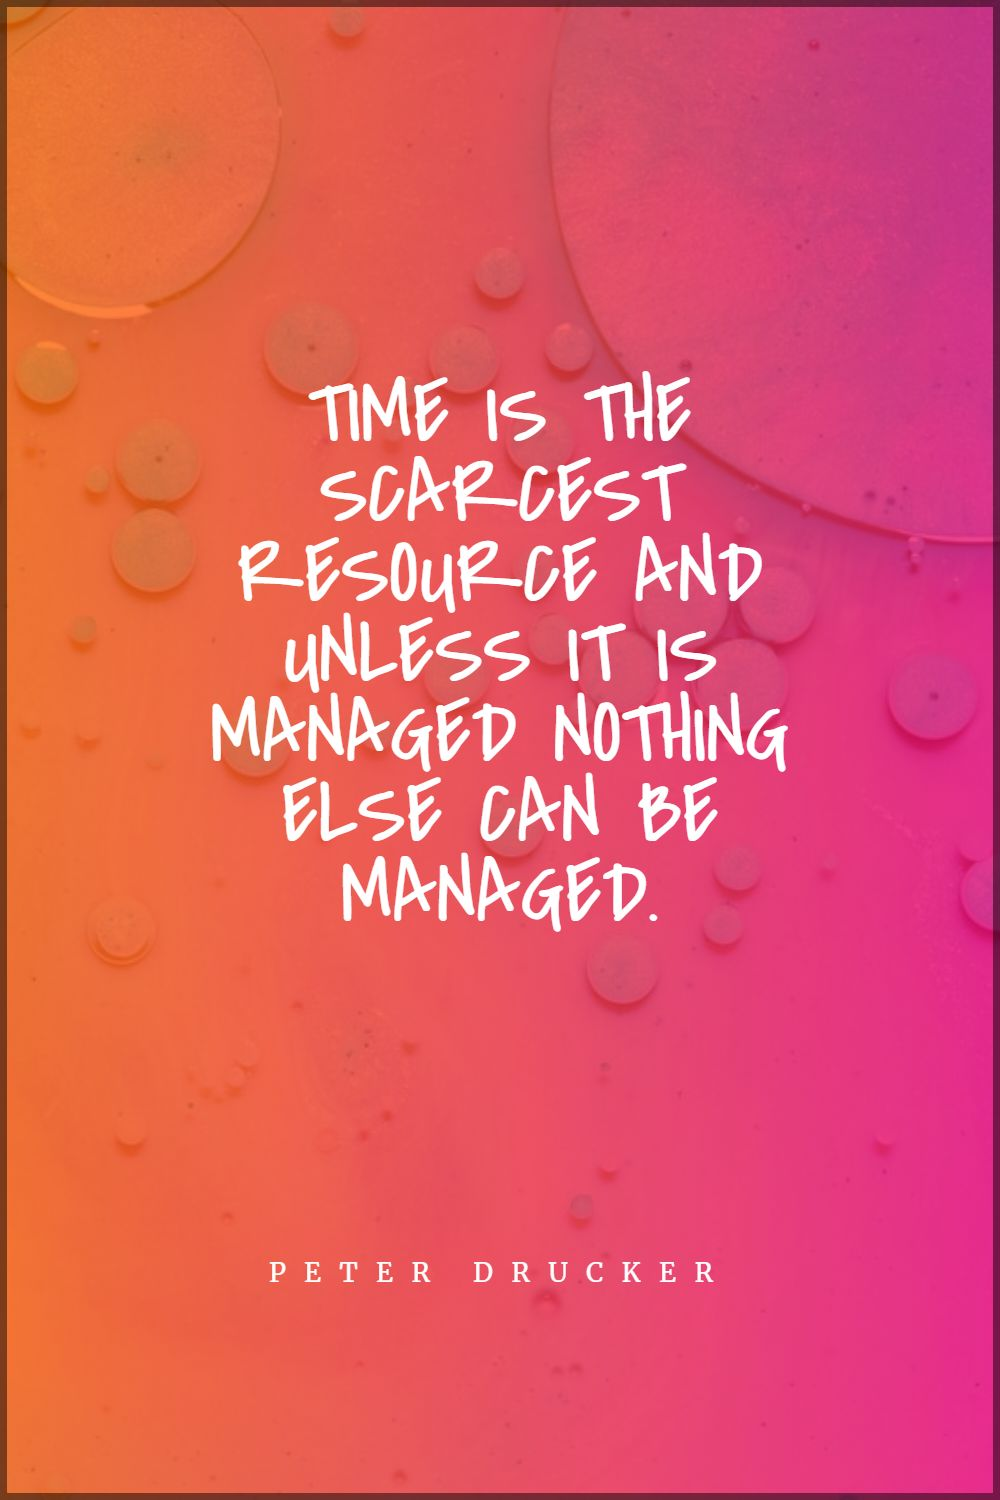 Quotes image of Time is the scarcest resource and unless it is managed nothing else can be managed.